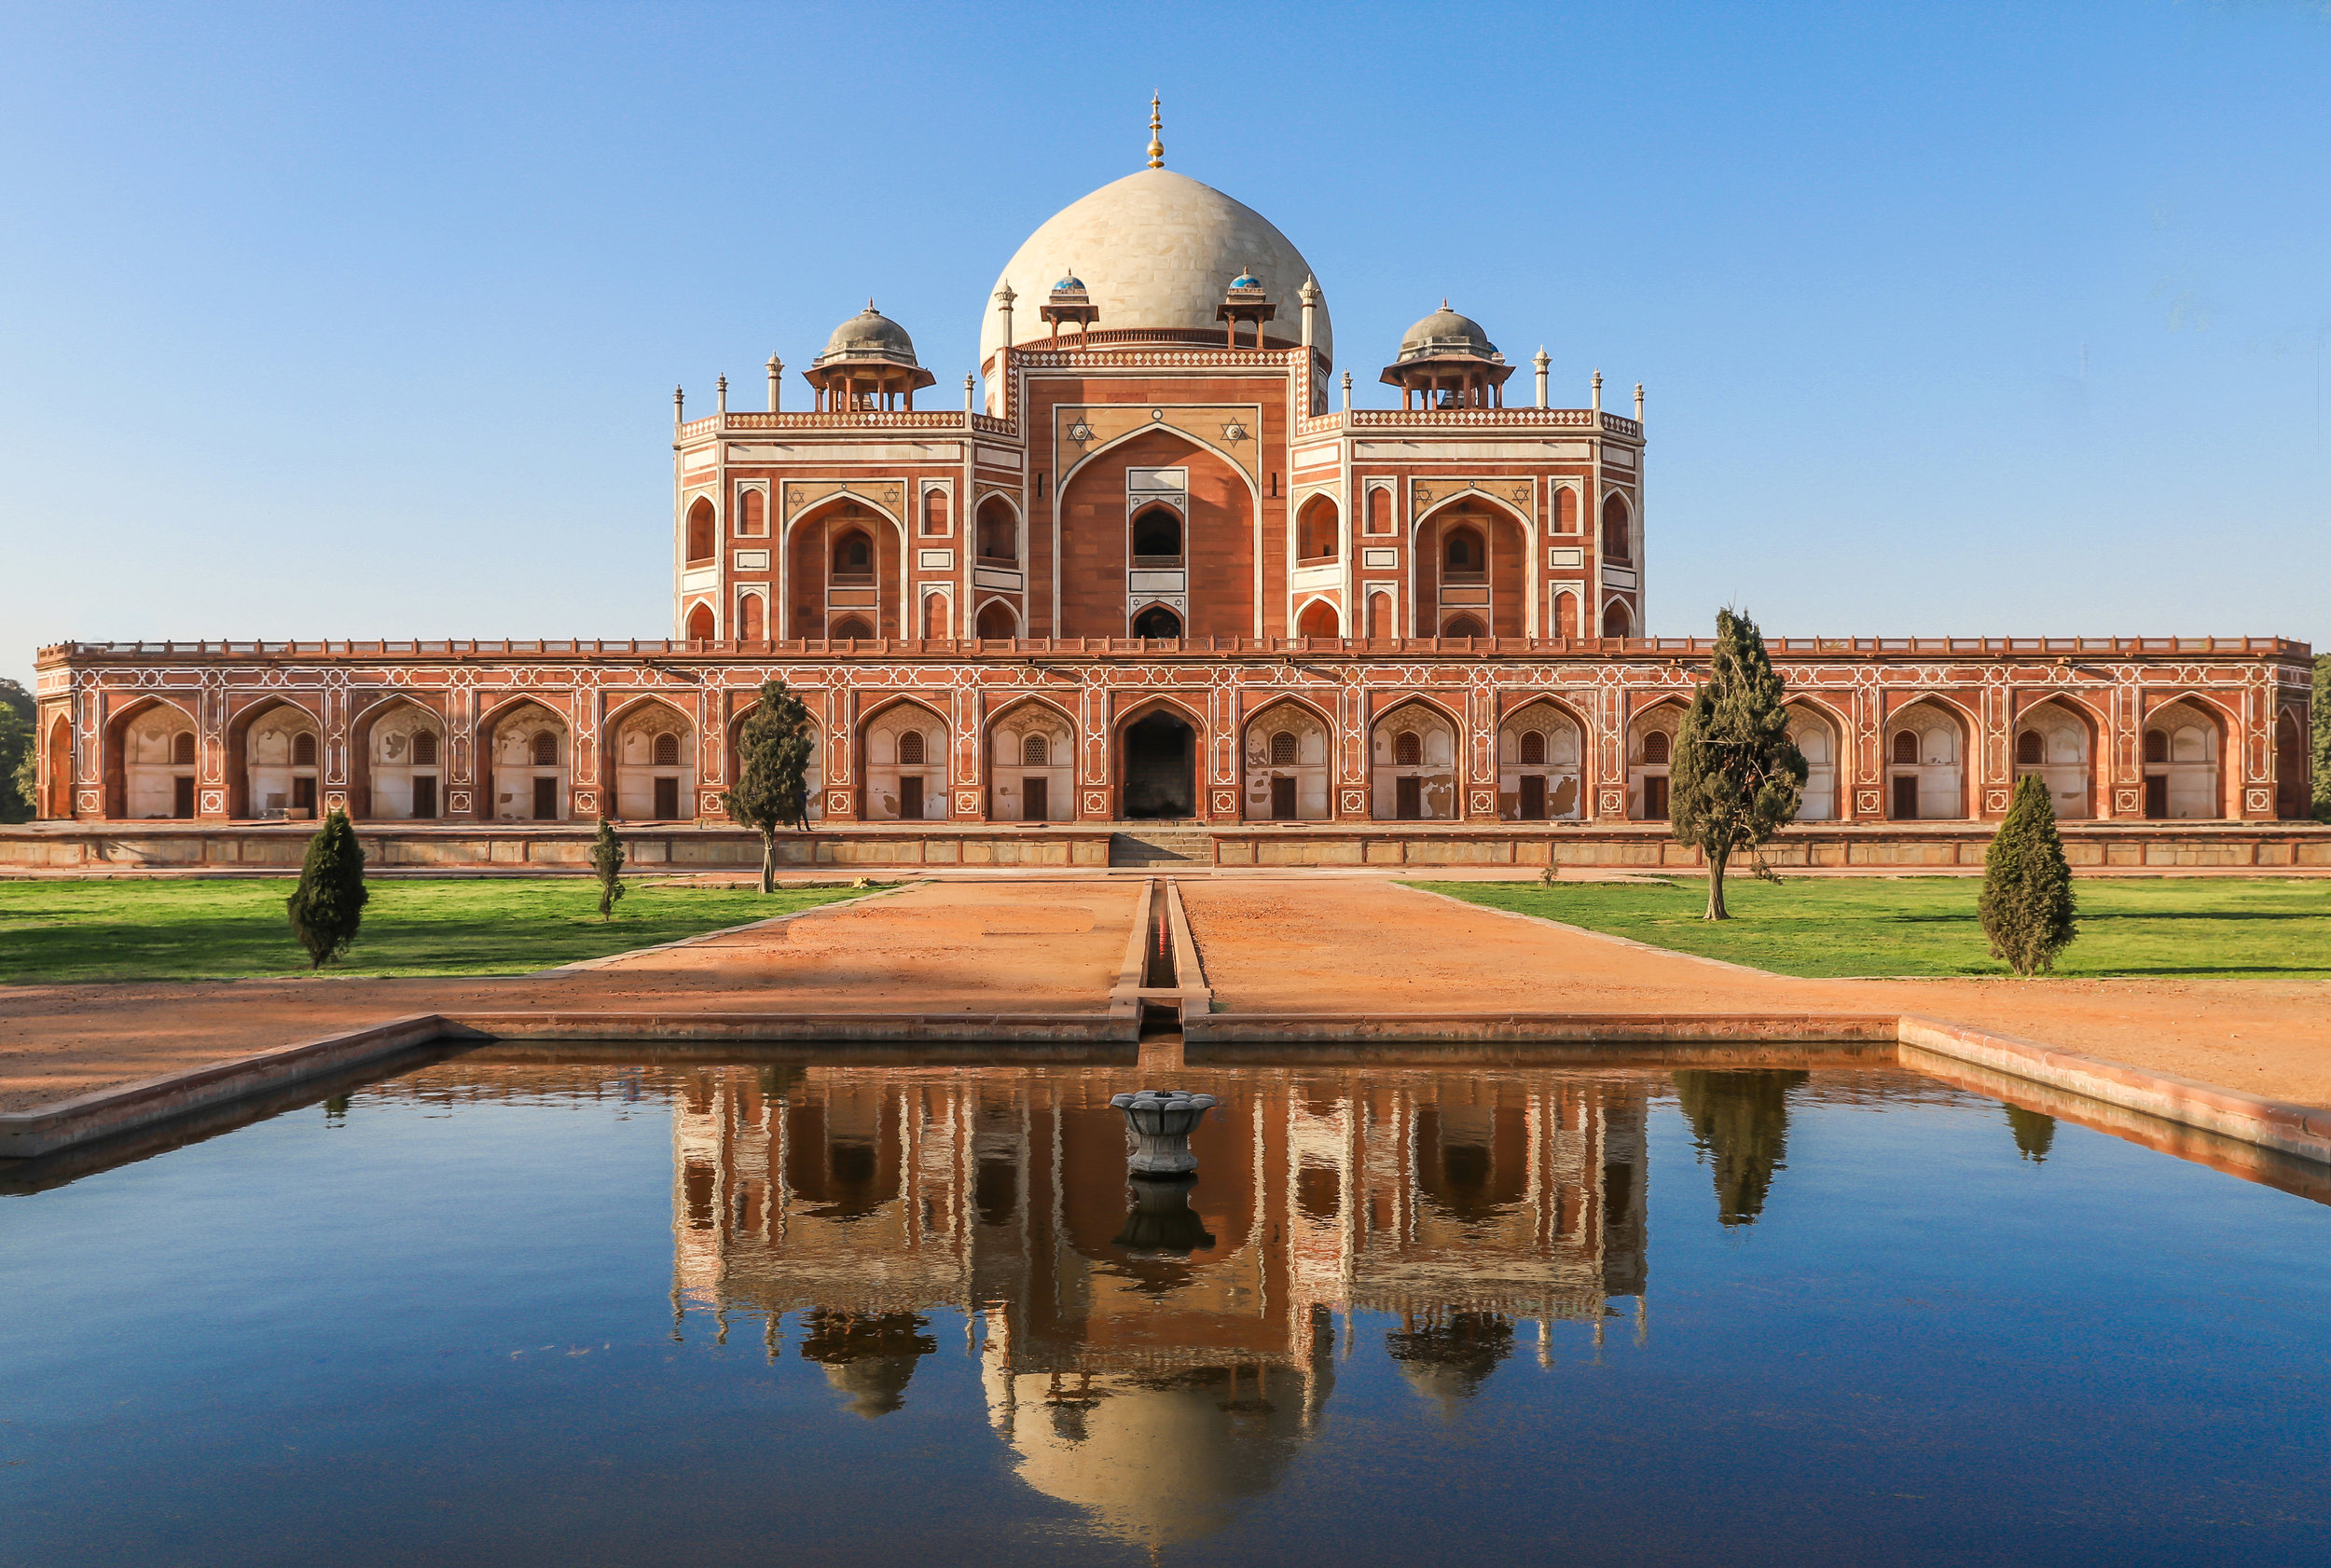 This is  Humayun's Tomb . It is located in the Nizamuddin East area in Delhi. The monument is quite crowded on the weekends. I used a tripod to take 5 shots and 5 second intervals and stacked them in Adobe Photoshop to remove people.